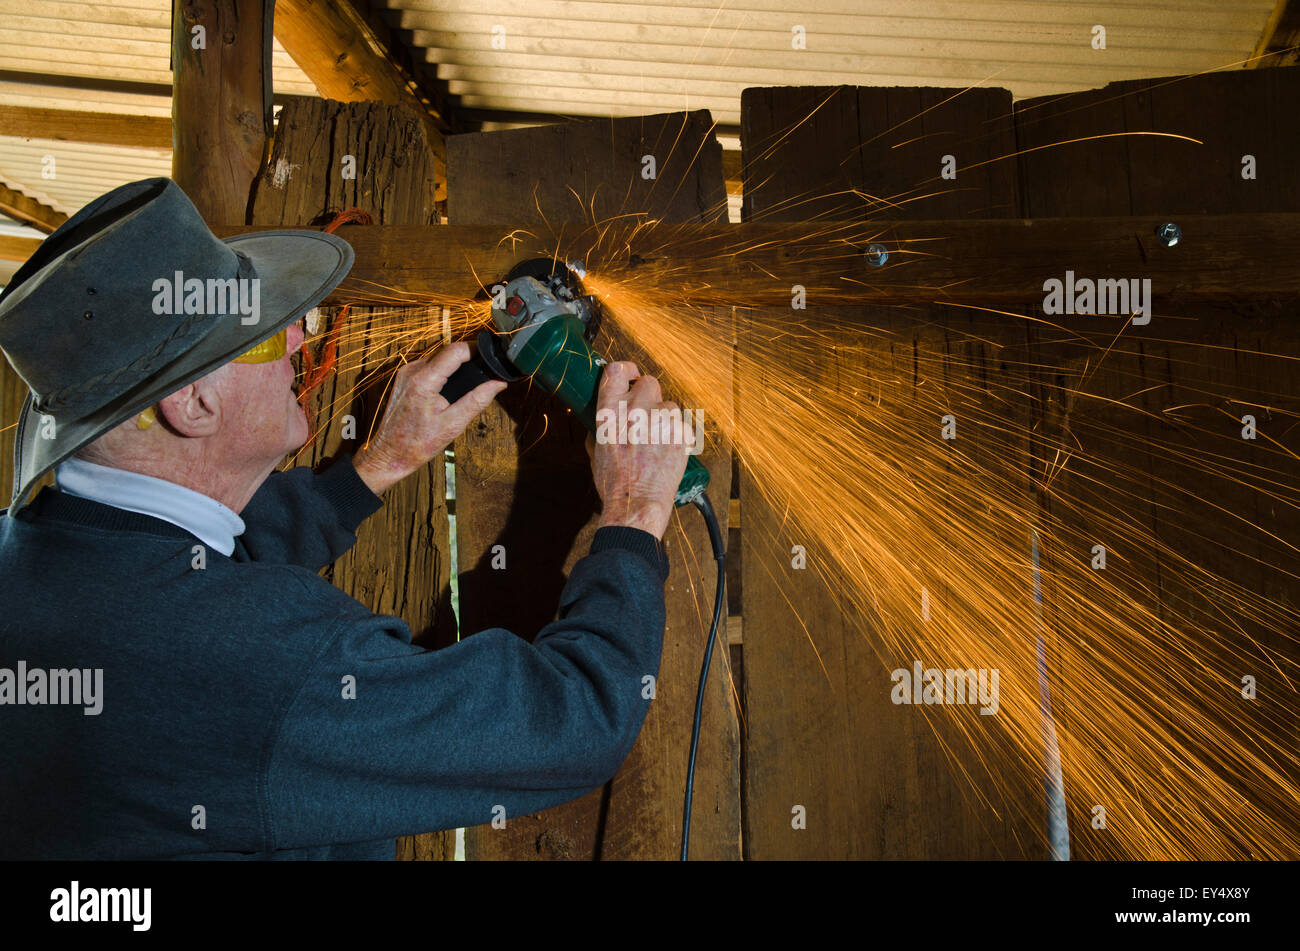 Man using angle grinder producing flying sparks while cutting protruding bolts. - Stock Image